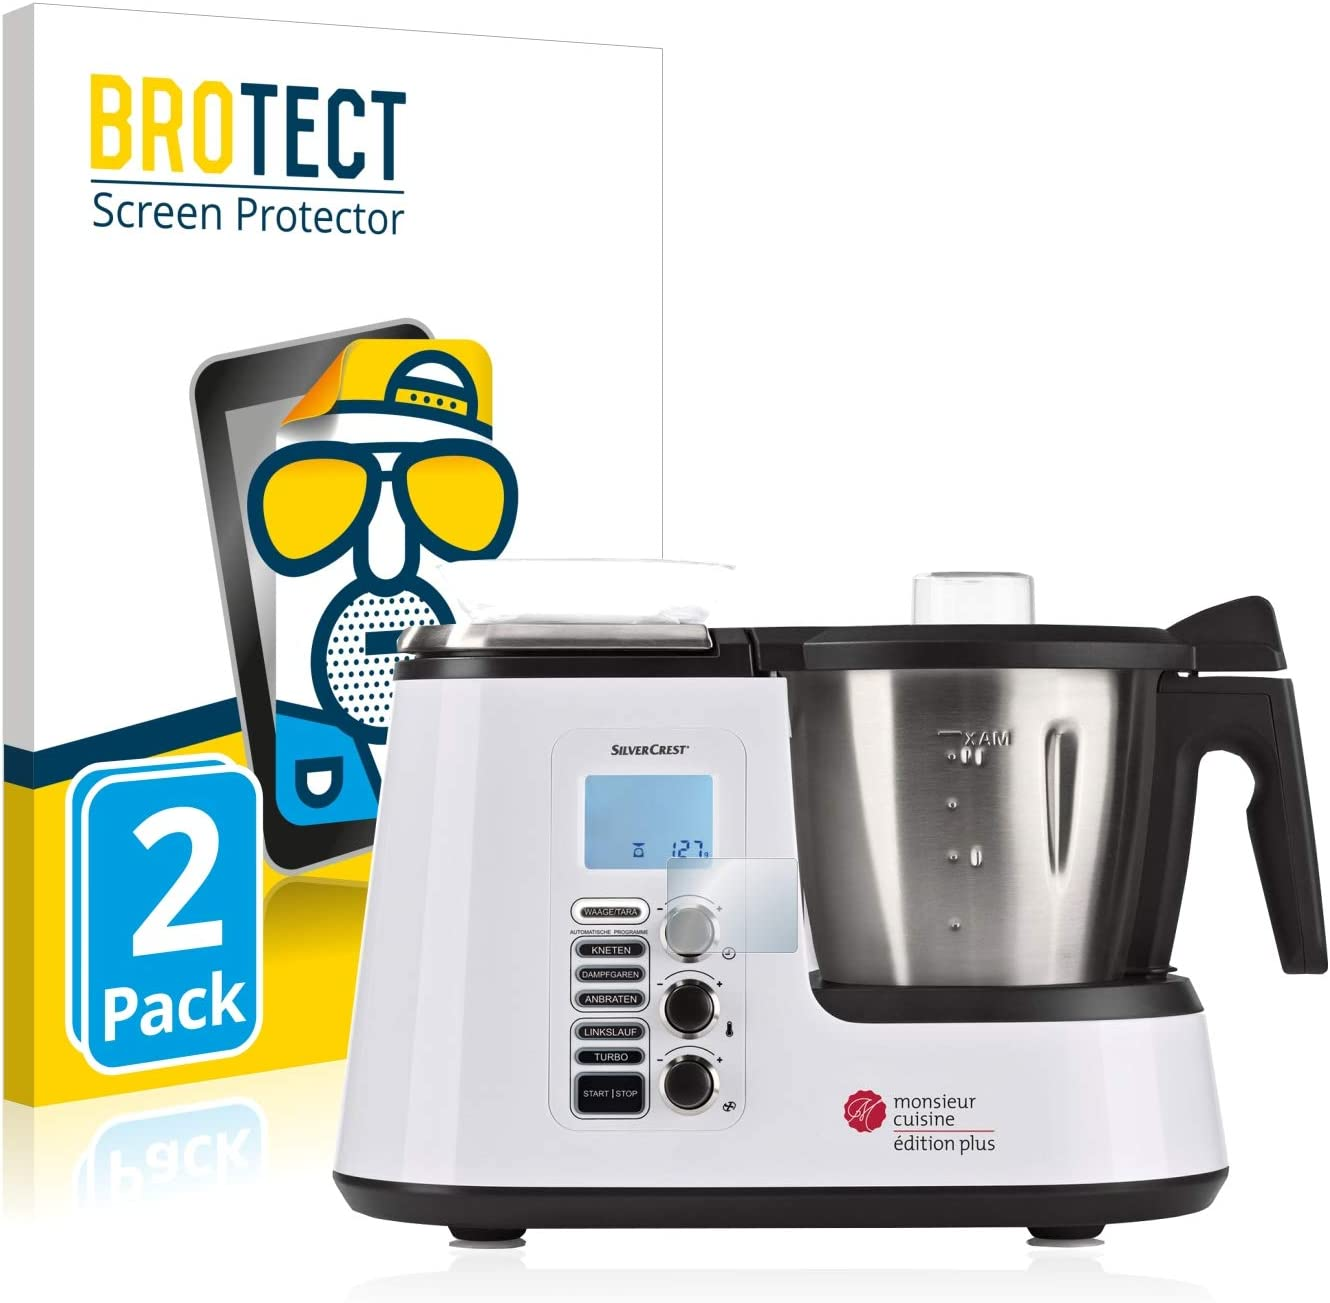 BROTECT Protector Pantalla Anti-Reflejos Compatible con SilverCrest Monsieur Cuisine Edition Plus (2 Unidades) Pelicula Mate Anti-Huellas: Amazon.es: Electrónica